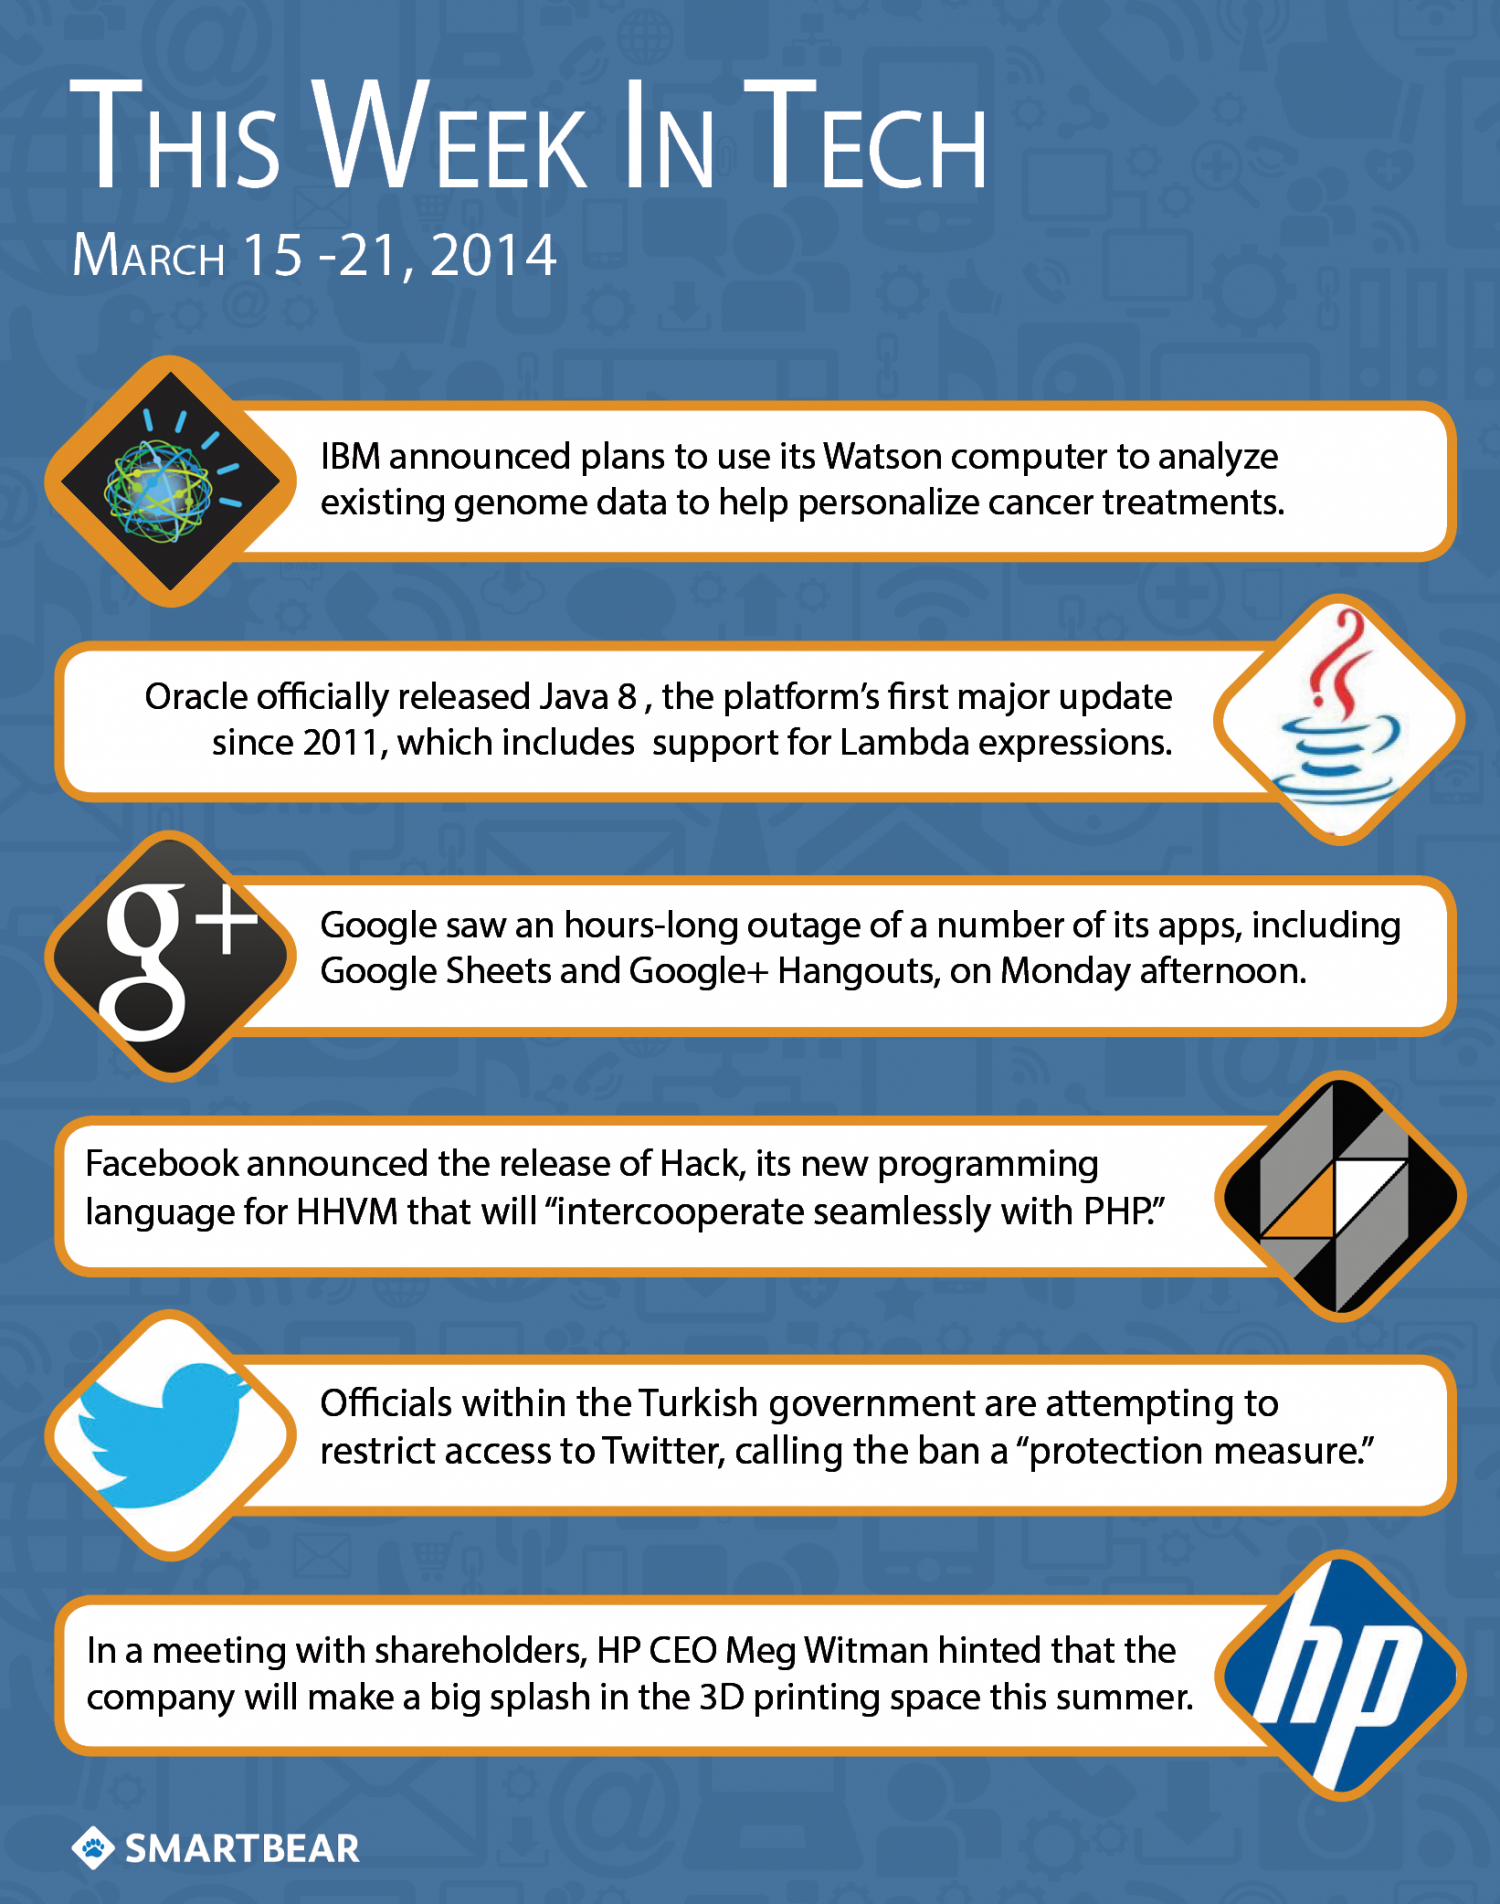 This Week in Tech: March 15-21 Infographic